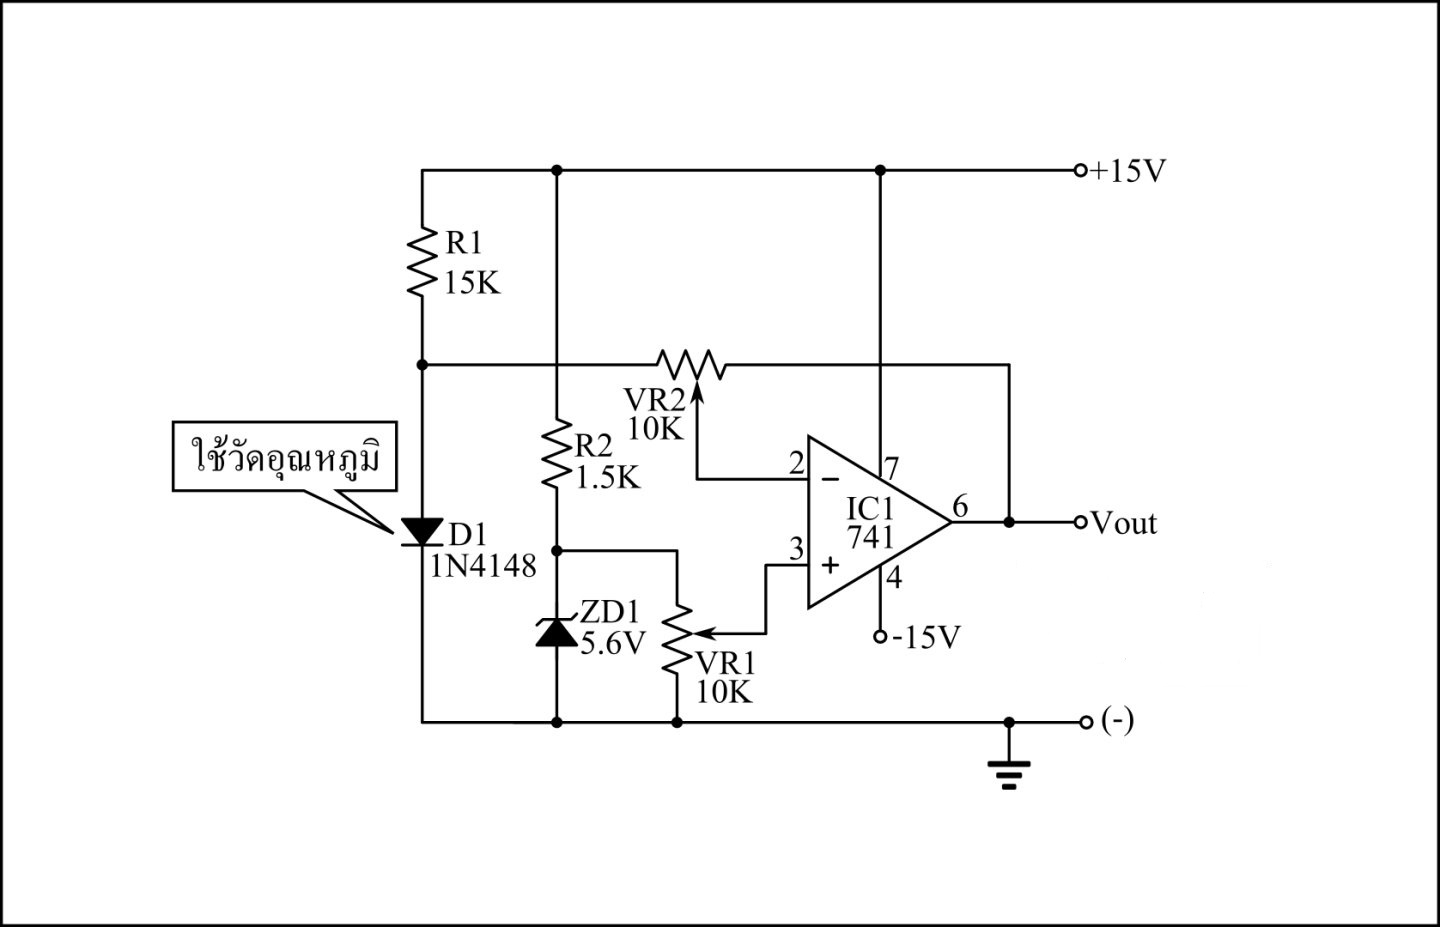 temperature candle using led electronic circuits diagram indexsensor circuit using 1n4148 diode electronic circuits diagram temperature candle using led electronic circuits